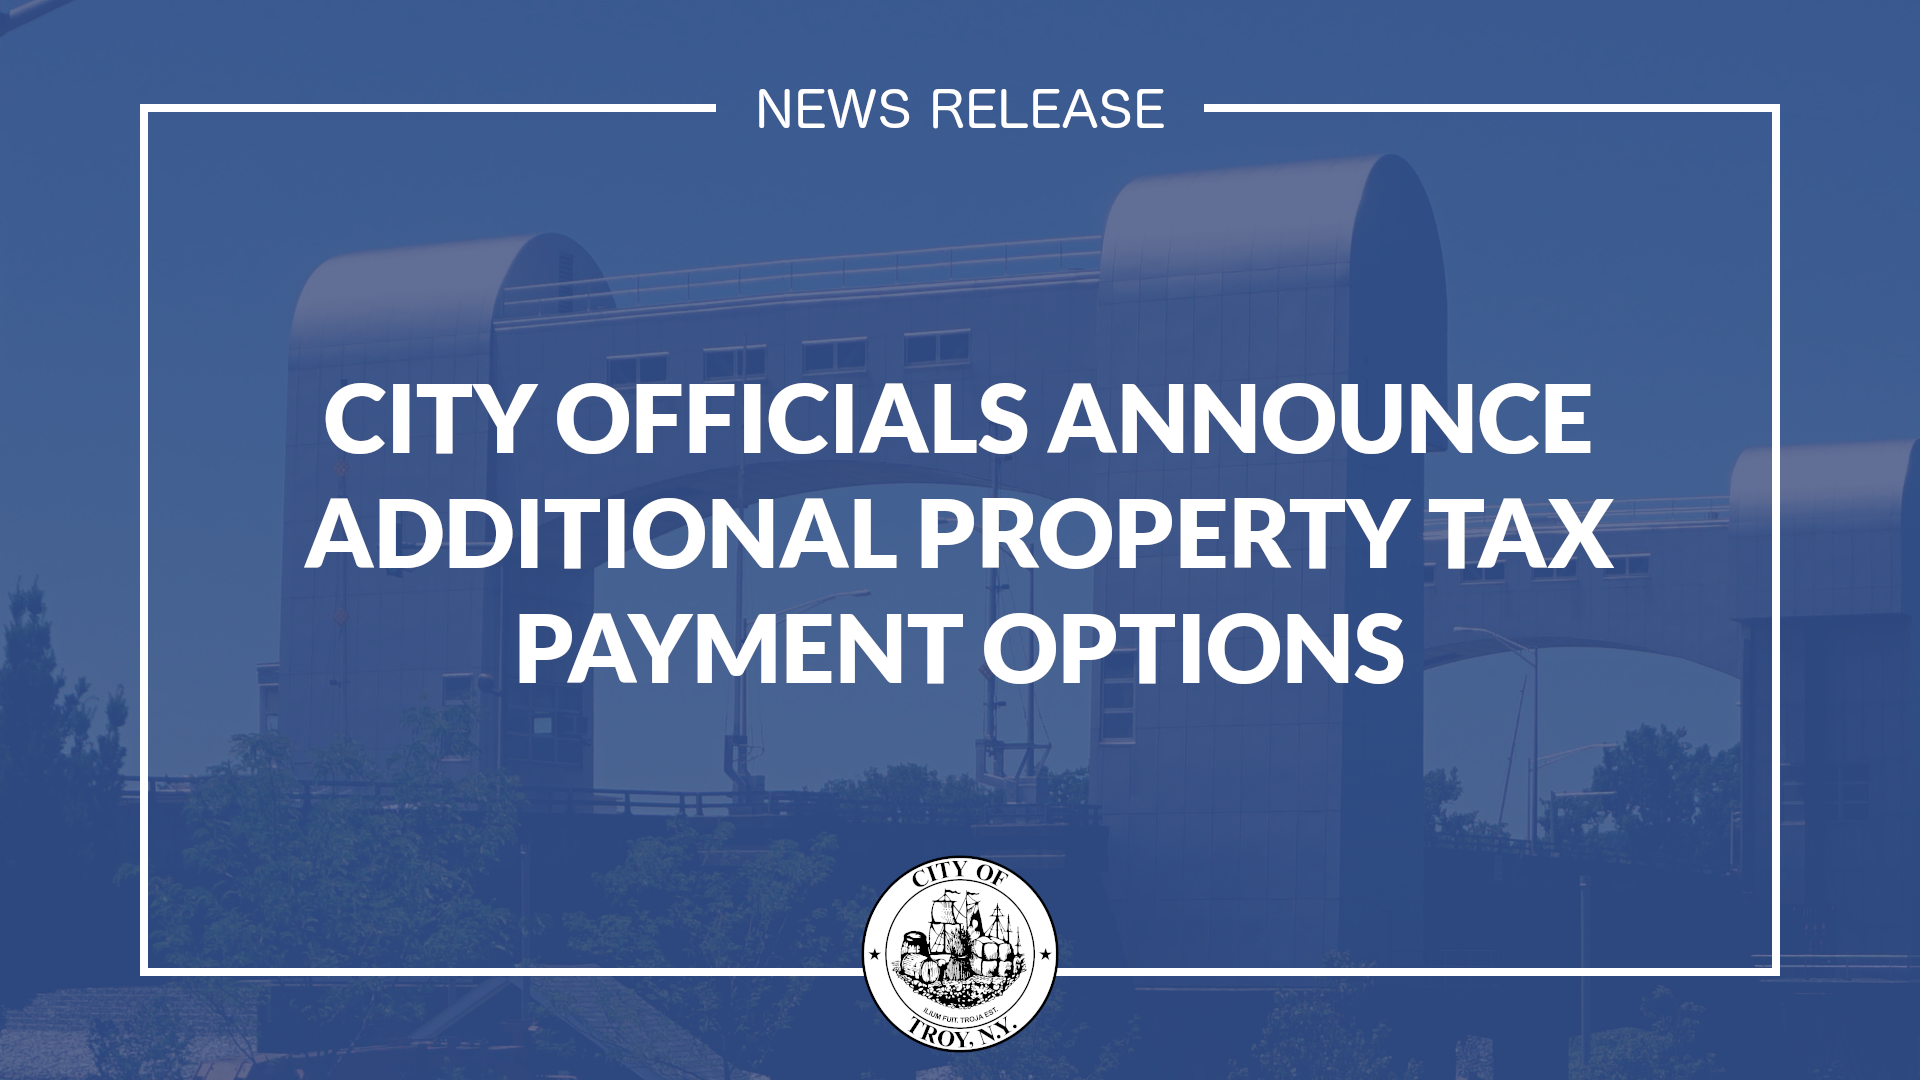 White text against a dark blue background and an image of the Green Island Bridge. Text reads City Officials Announce Additional Property Tax Payment Options.